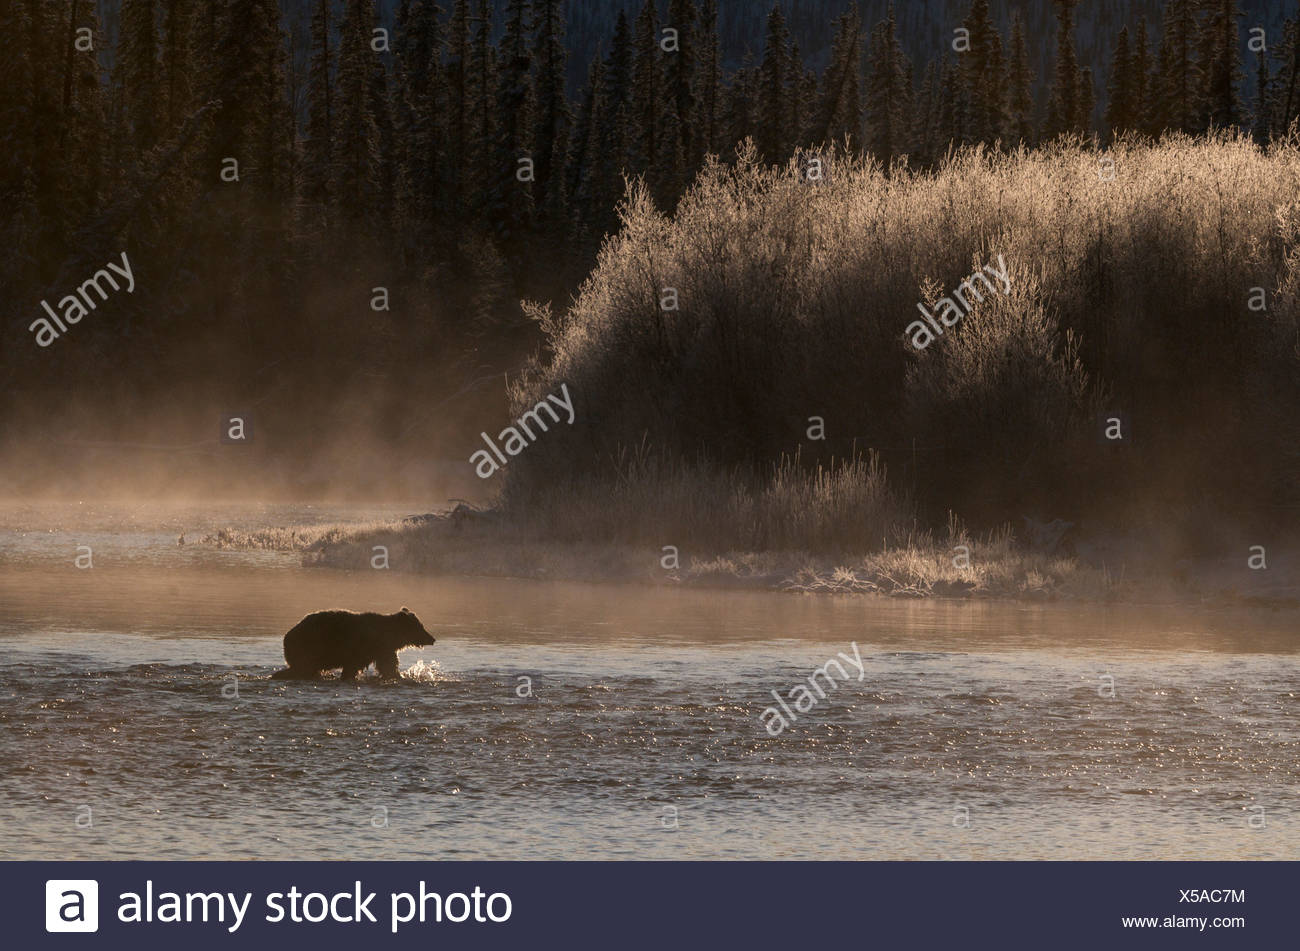 Grizzly Bear (Ursus arctos) crossing Fishing Branch River, Ni'iinlii Njik Ecological Reserve, Yukon Territory, Canada - Stock Image